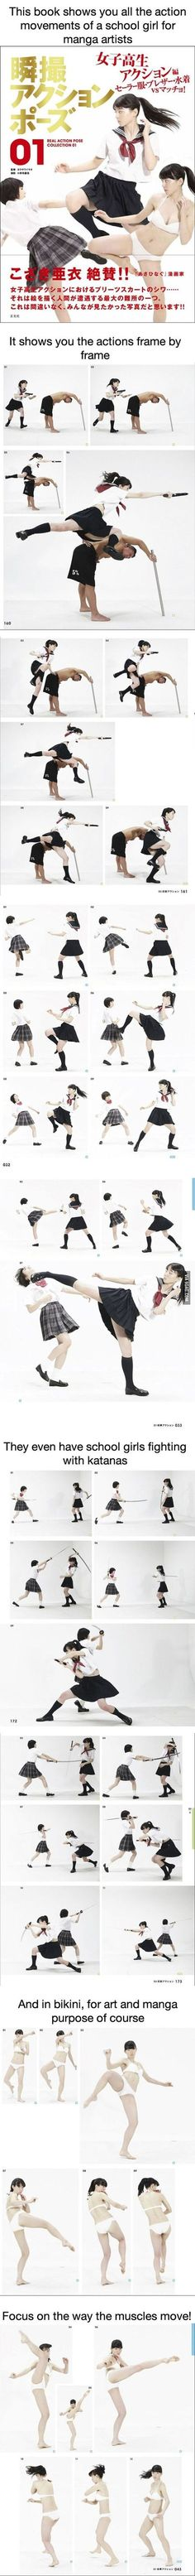 There's a reference book to teach you how to draw fighting school girls: